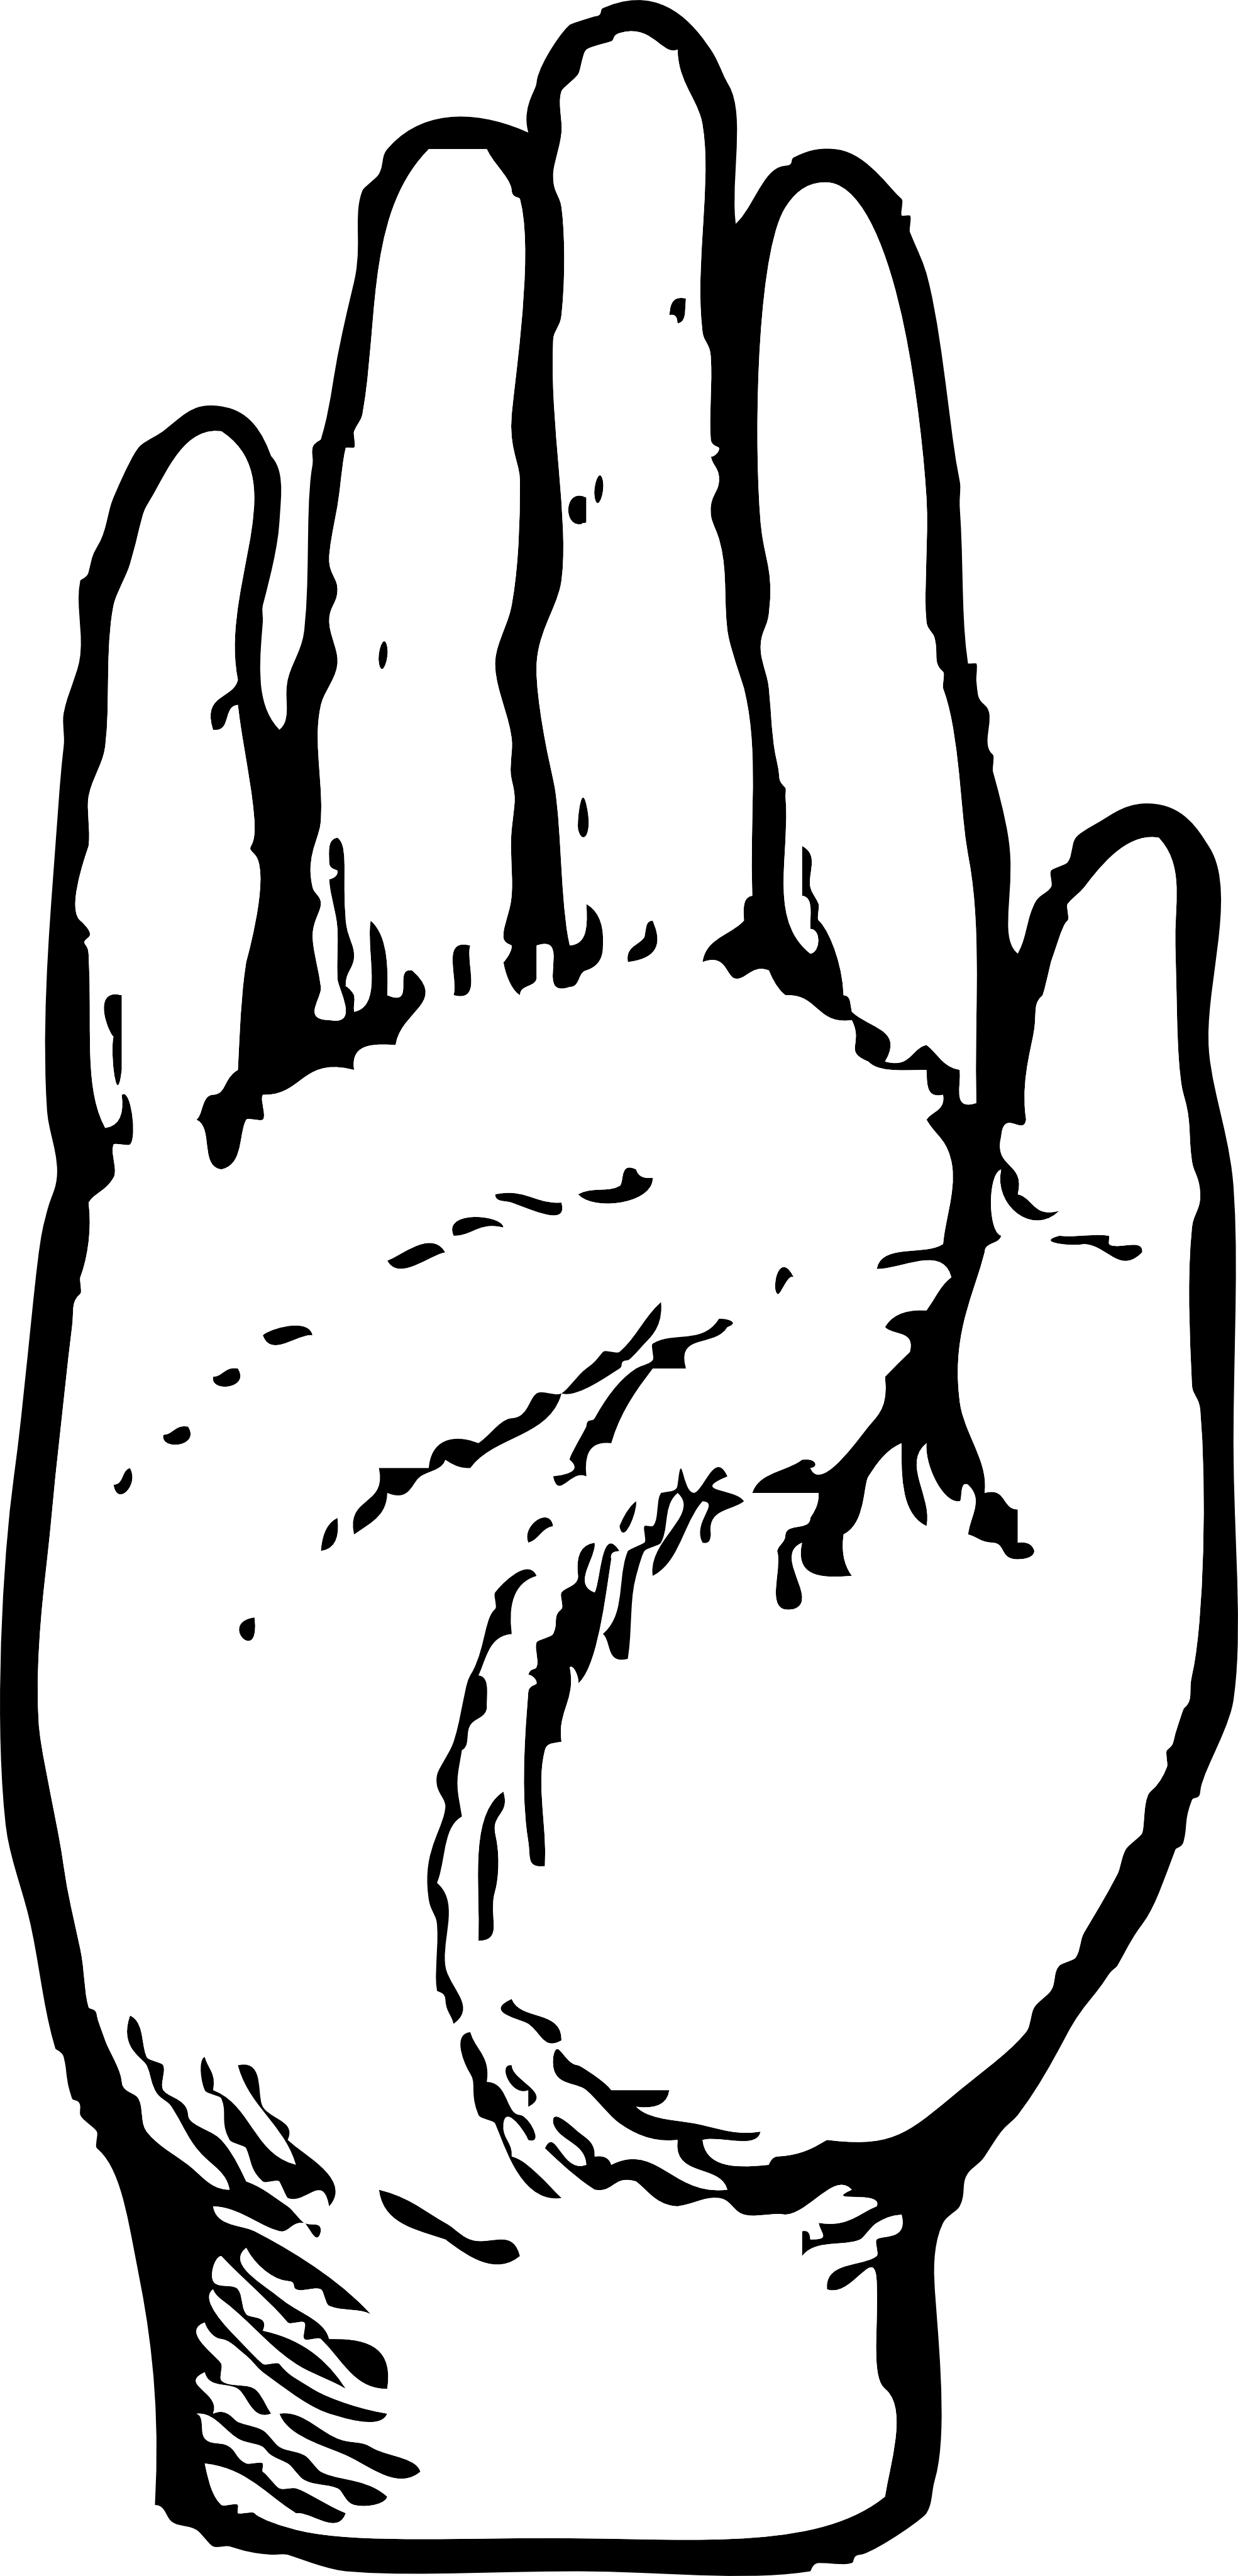 Palm hand free black and white clipart clipart Raise Your Hand Clipart | Free download best Raise Your Hand ... clipart